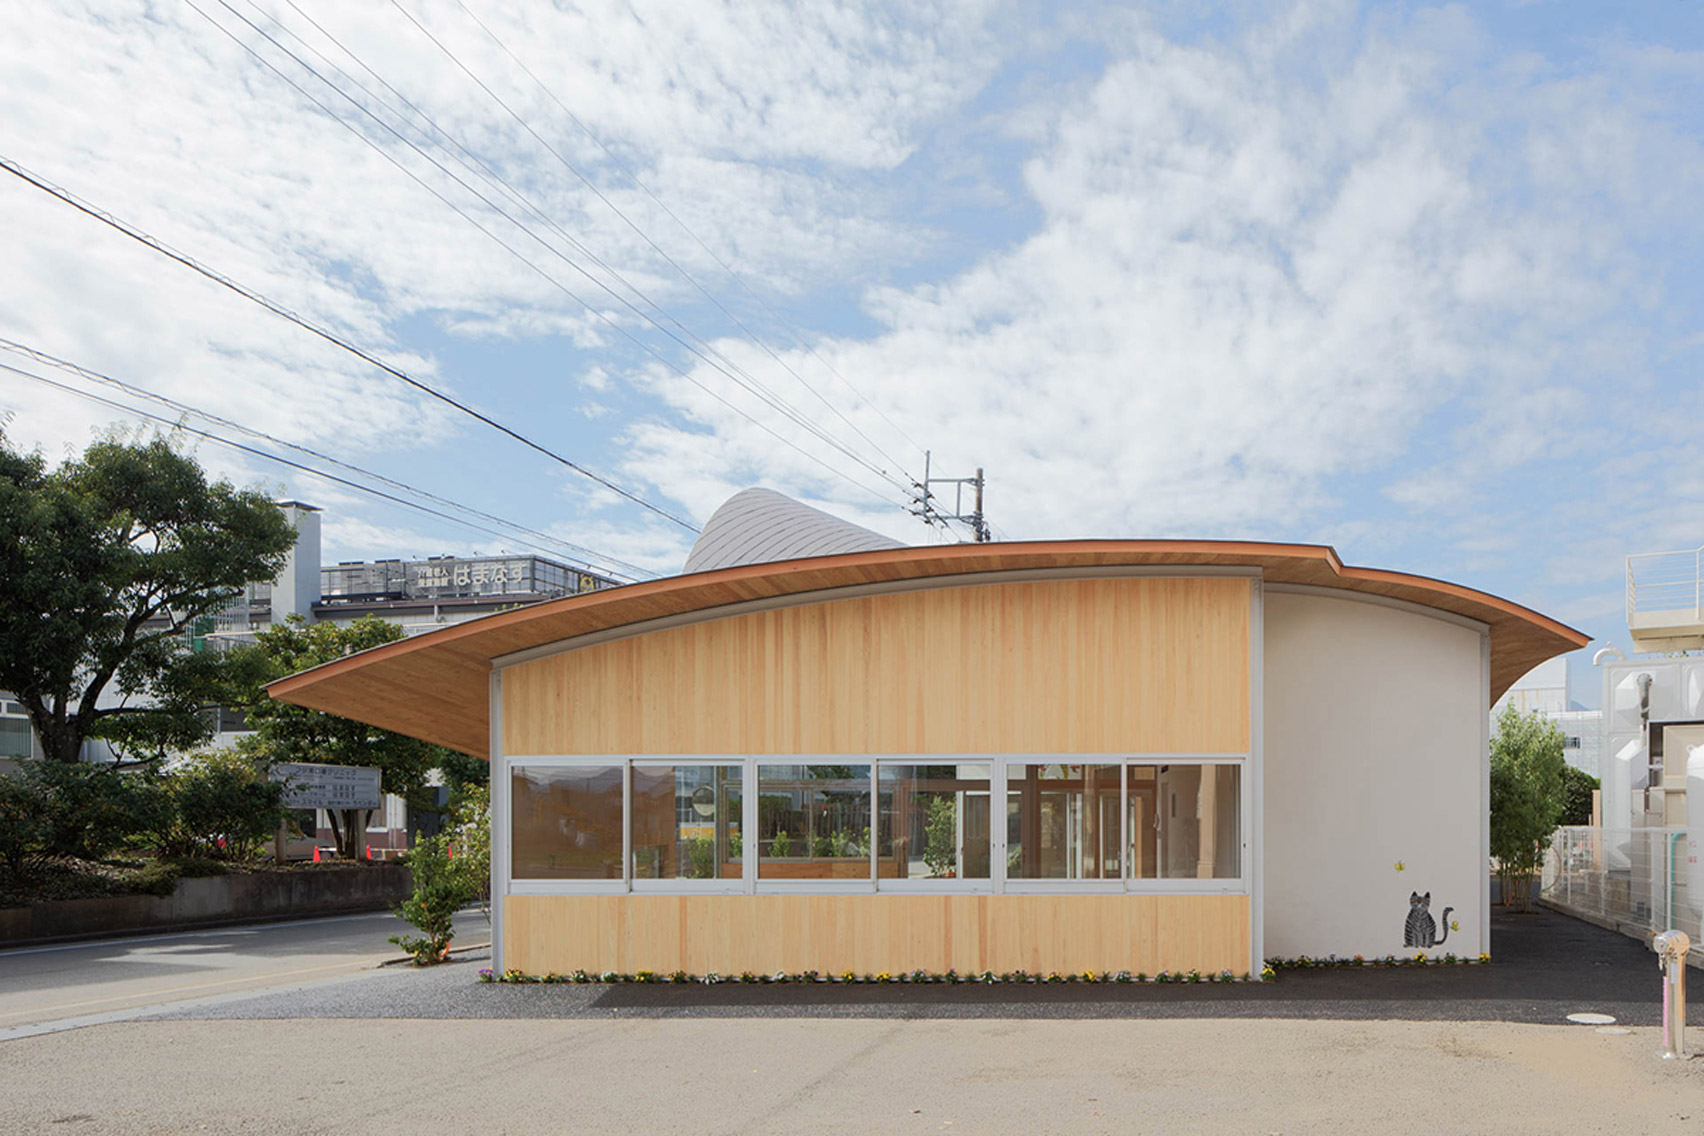 Takashige Yamashita creates nursery with curving timber roof near Mount Fuji